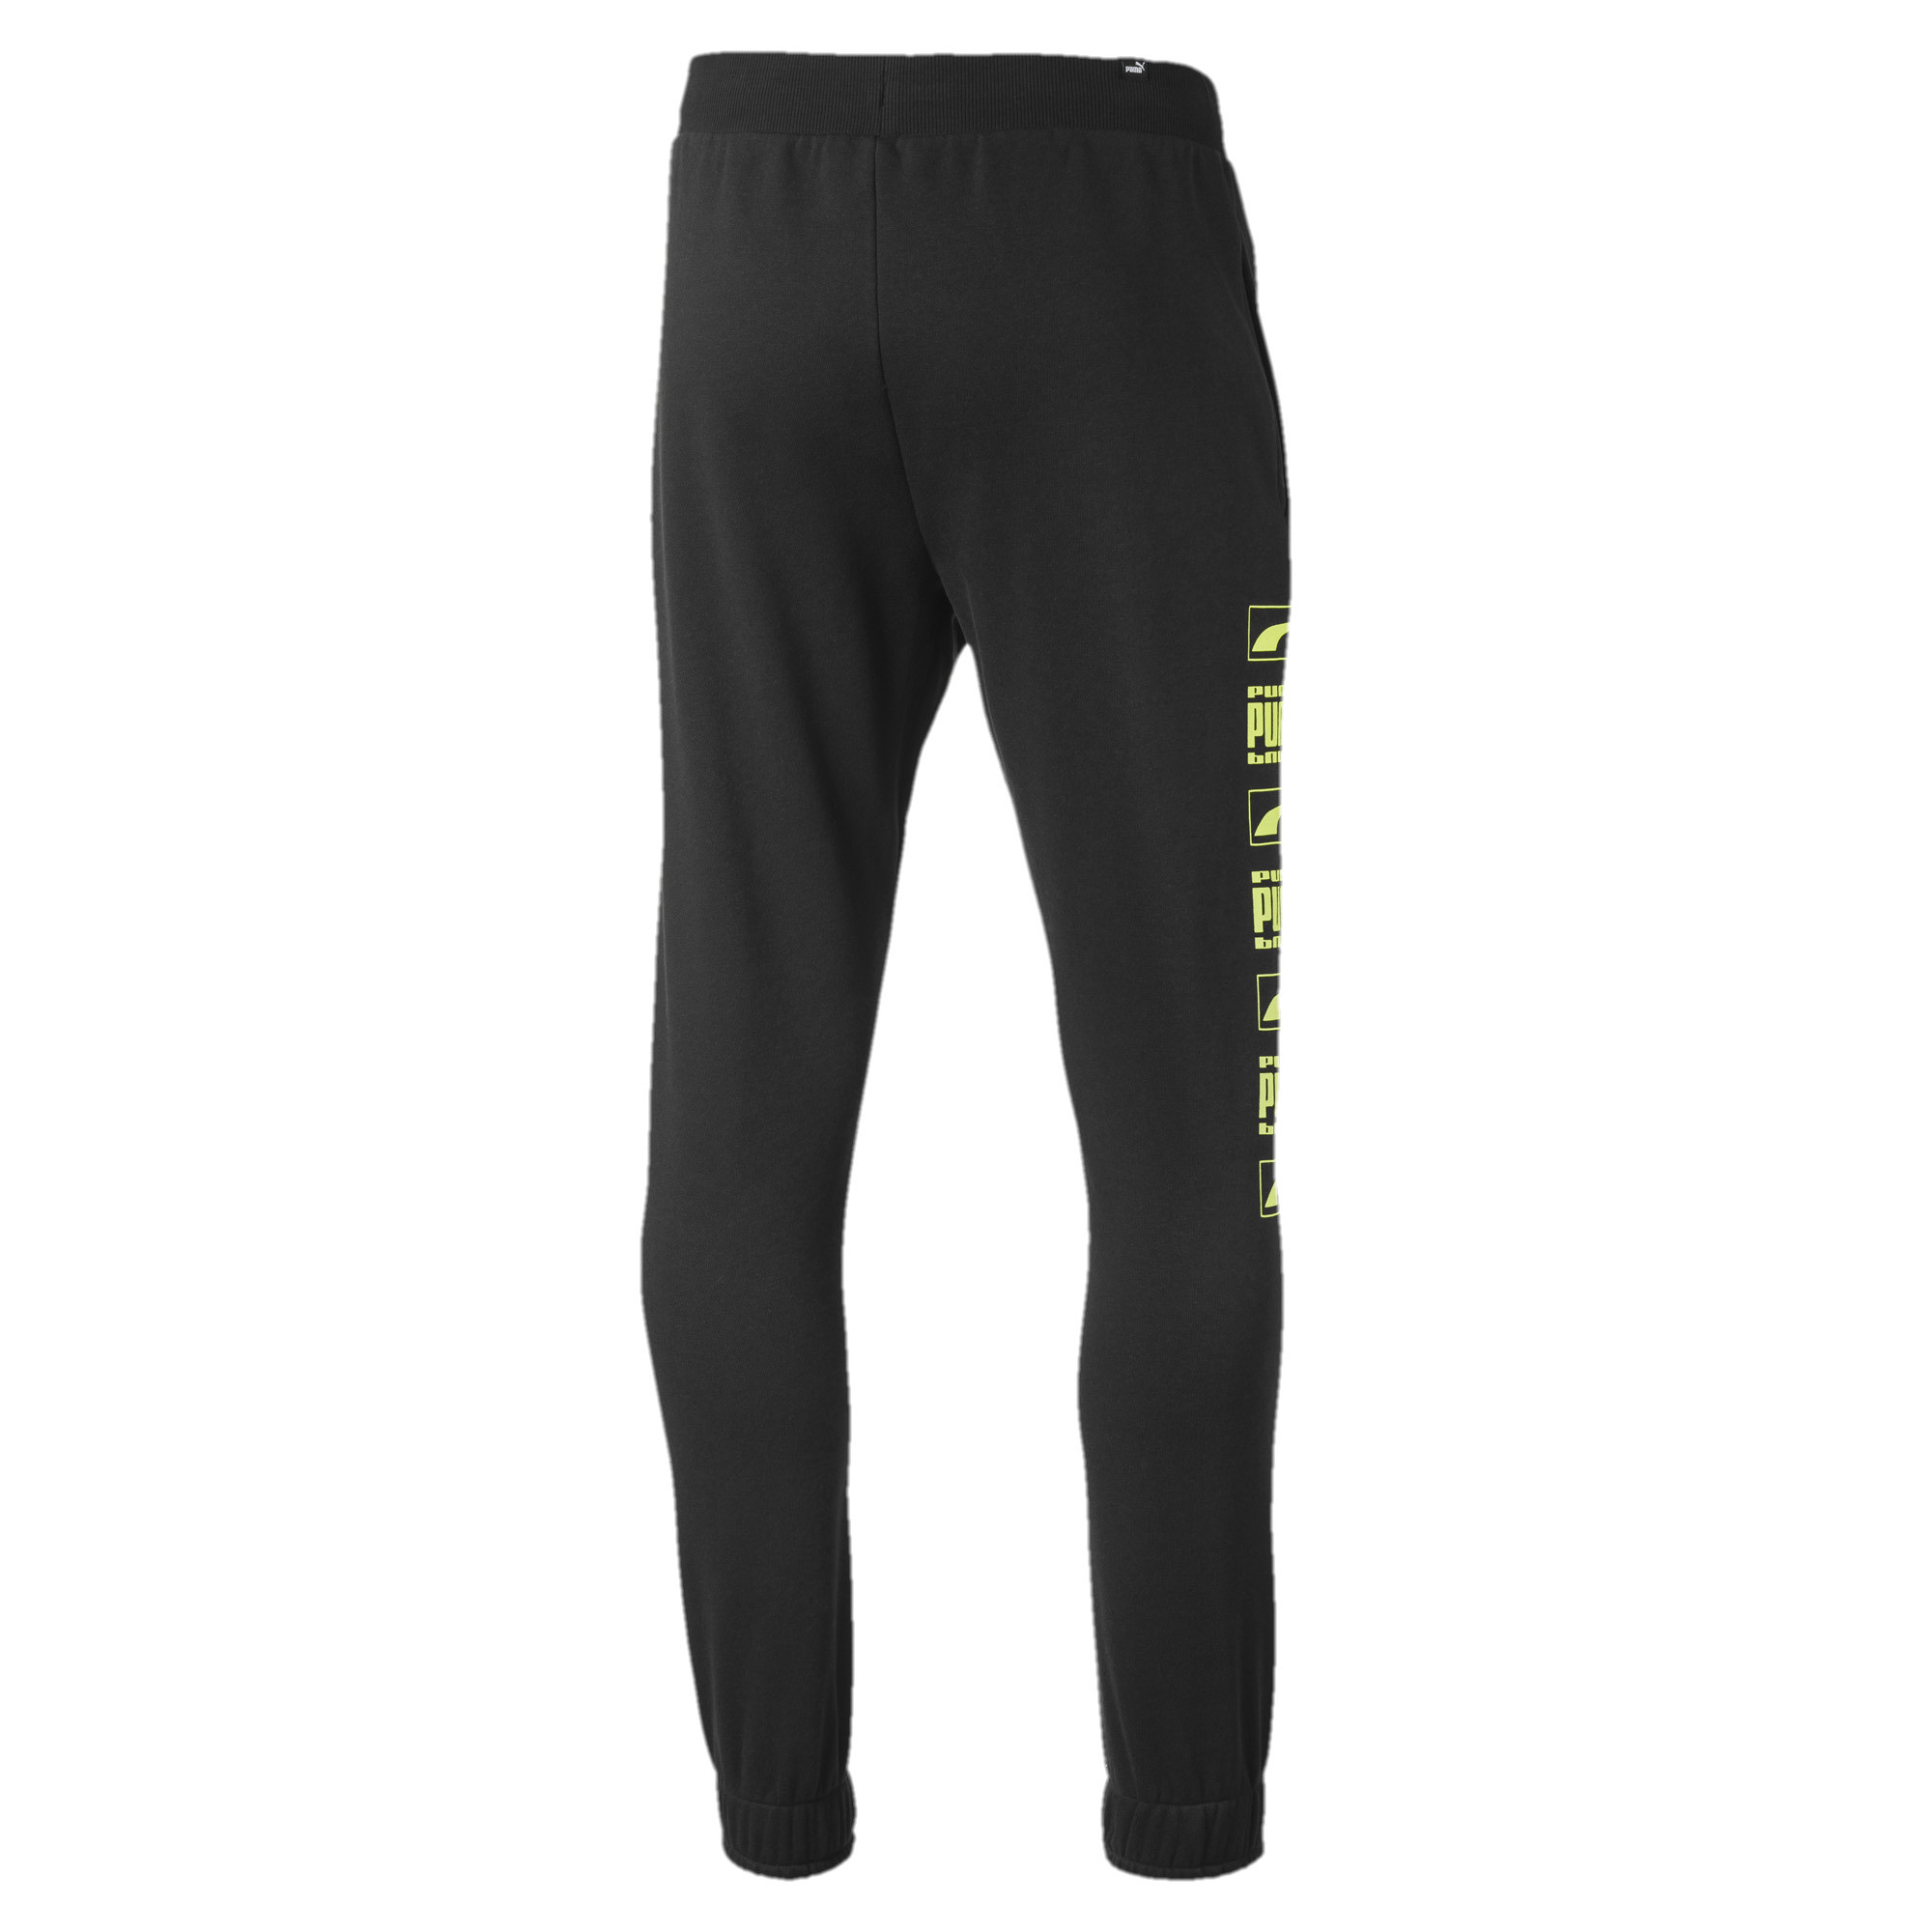 PUMA-Rebel-Bold-Men-039-s-Sweatpants-Men-Knitted-Pants-Basics thumbnail 8